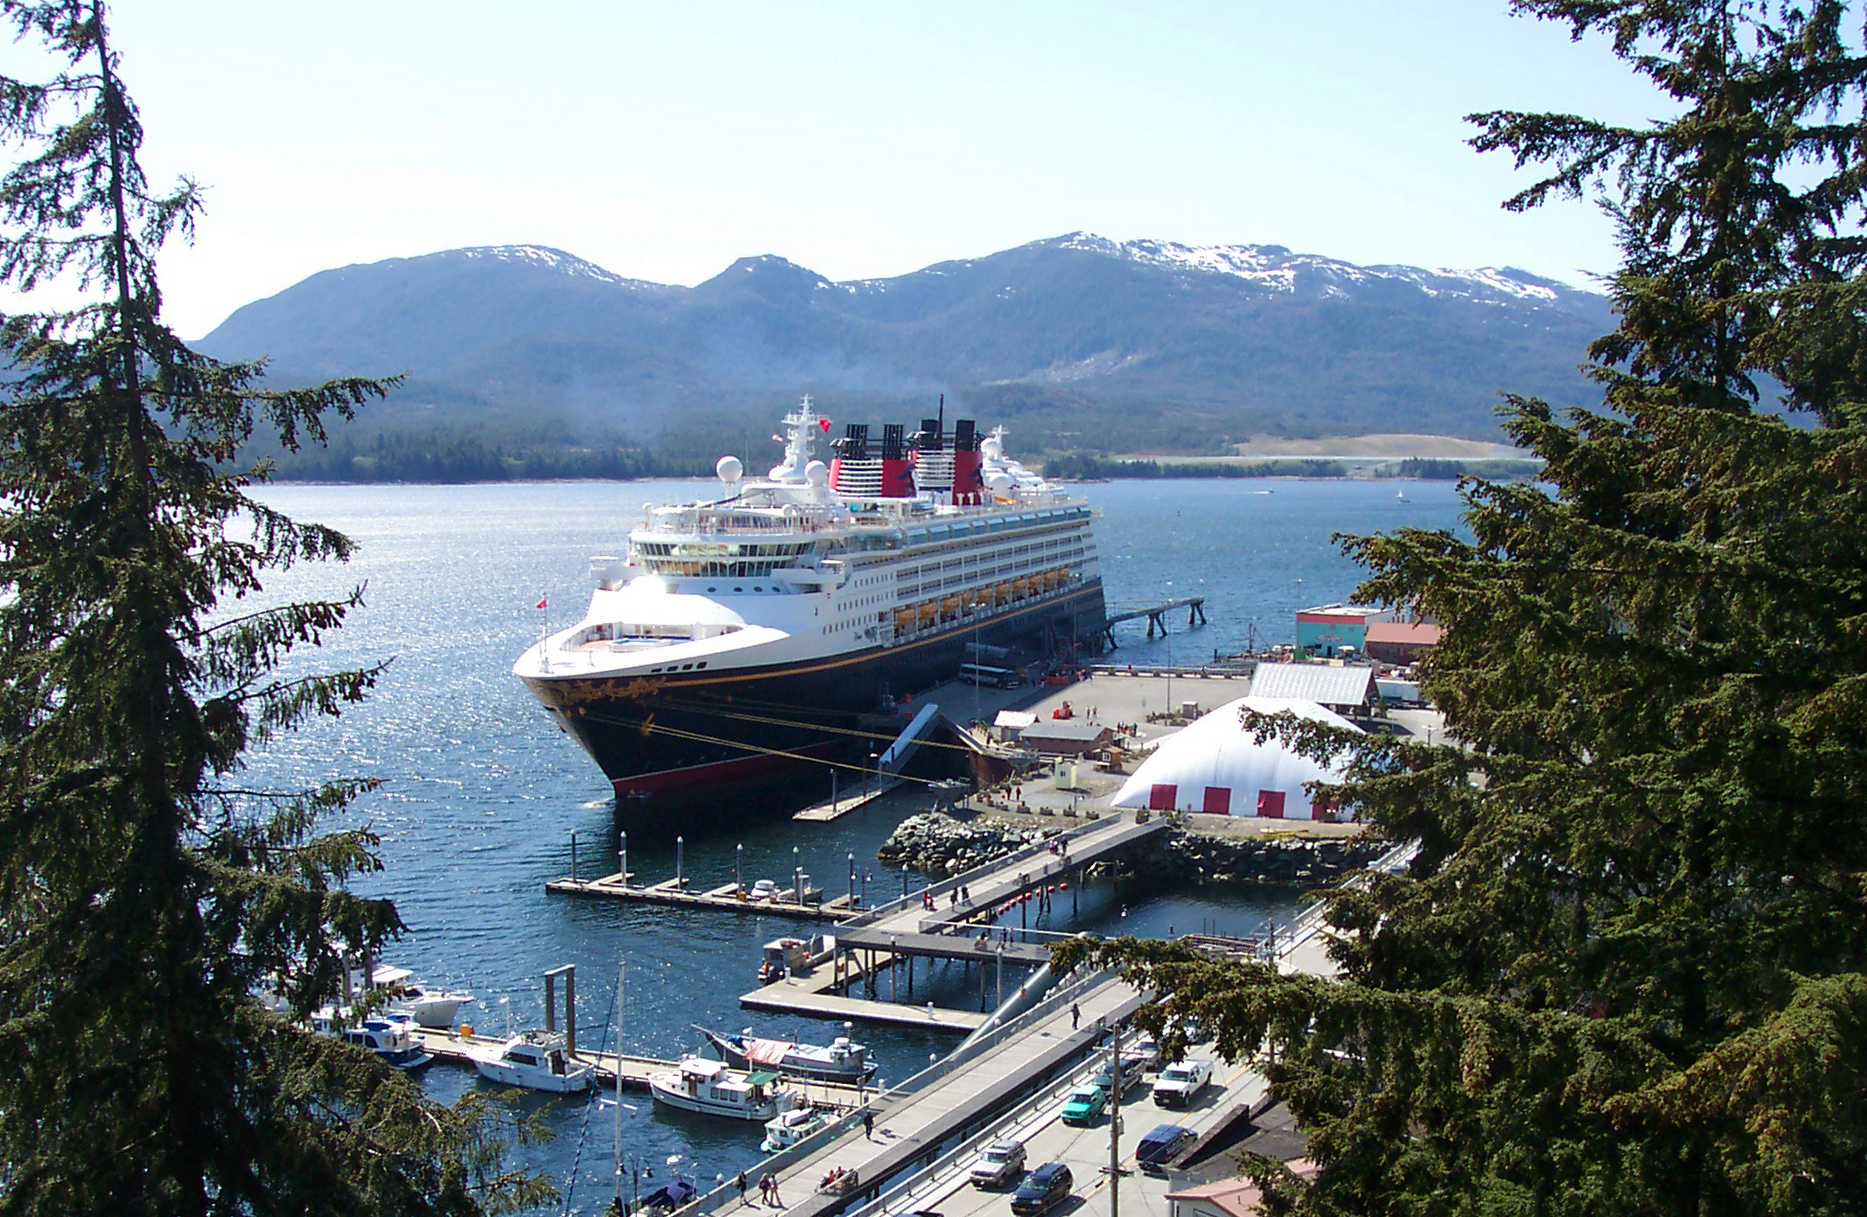 Disney Wonder at tied up at the cruise ship dock in Ketchikan